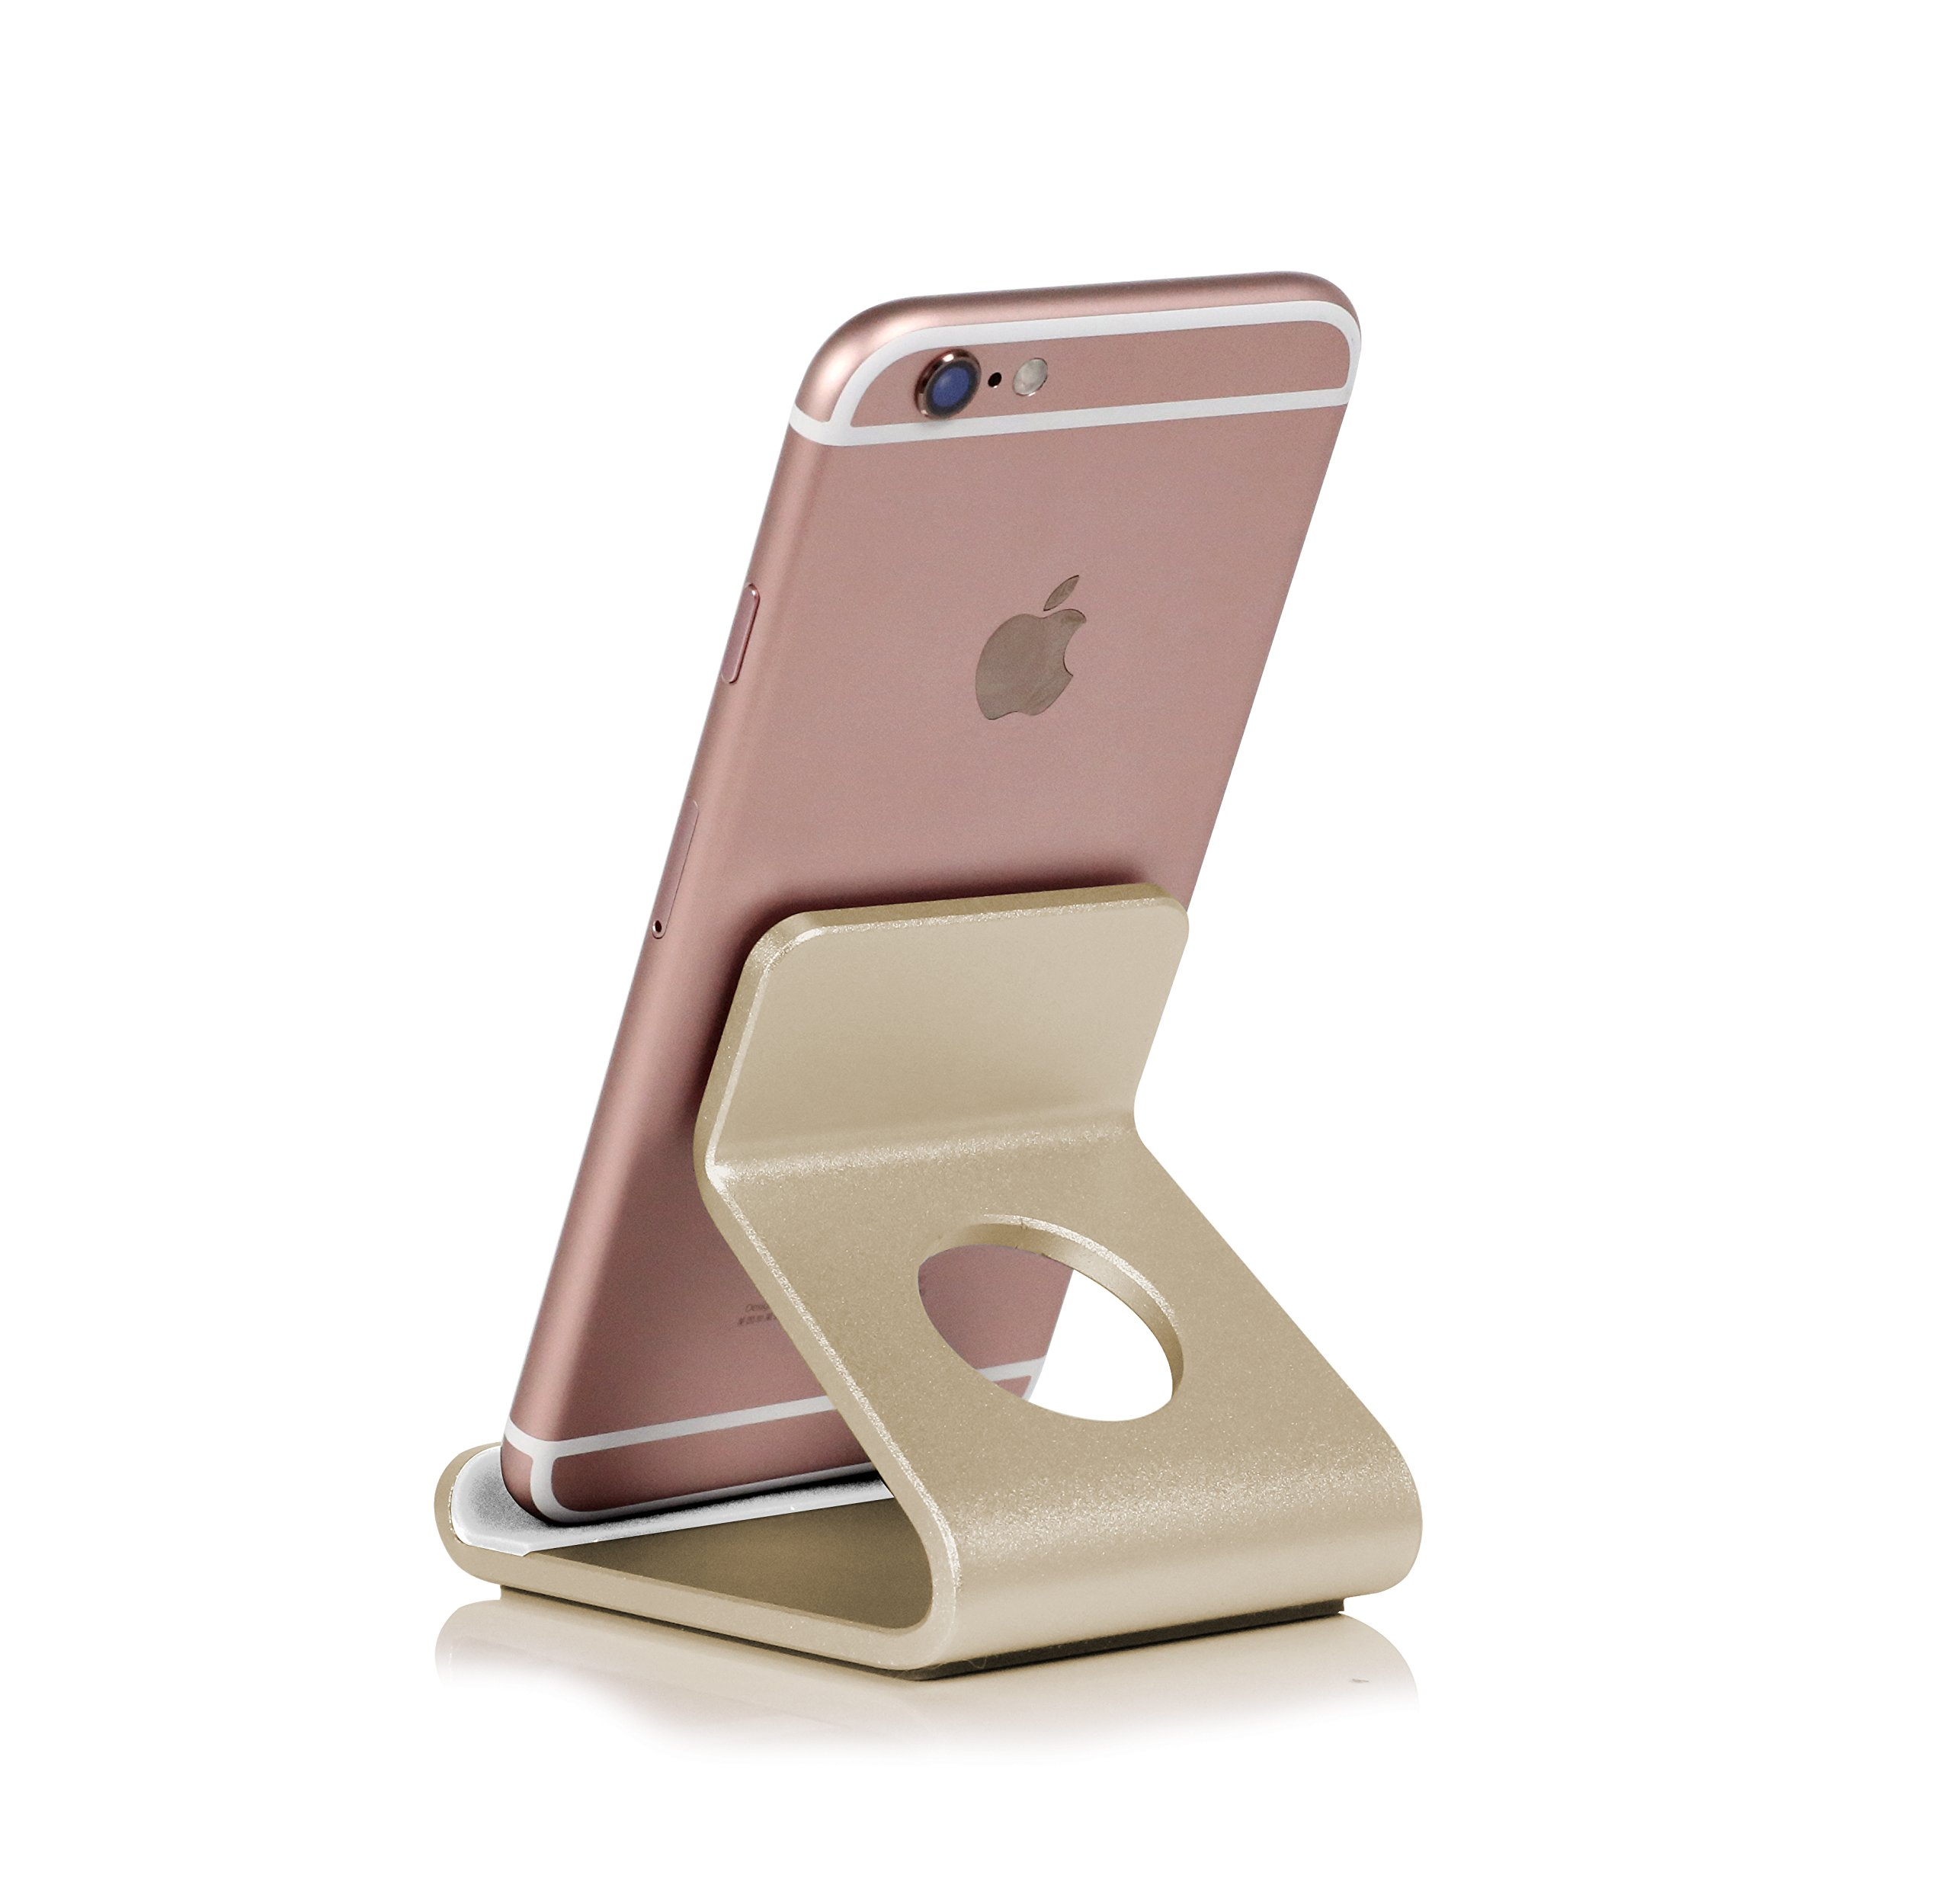 Cell Phone Stand, Tablet Stand, Mobile Phone Holder Dock Cradle Smartphone Aluminum Alloy Stand For Switch Universal, for all Android Phone,iPhone5 6 7 8 X Plus, iPad, charging Accessories (XWJ-0601G)